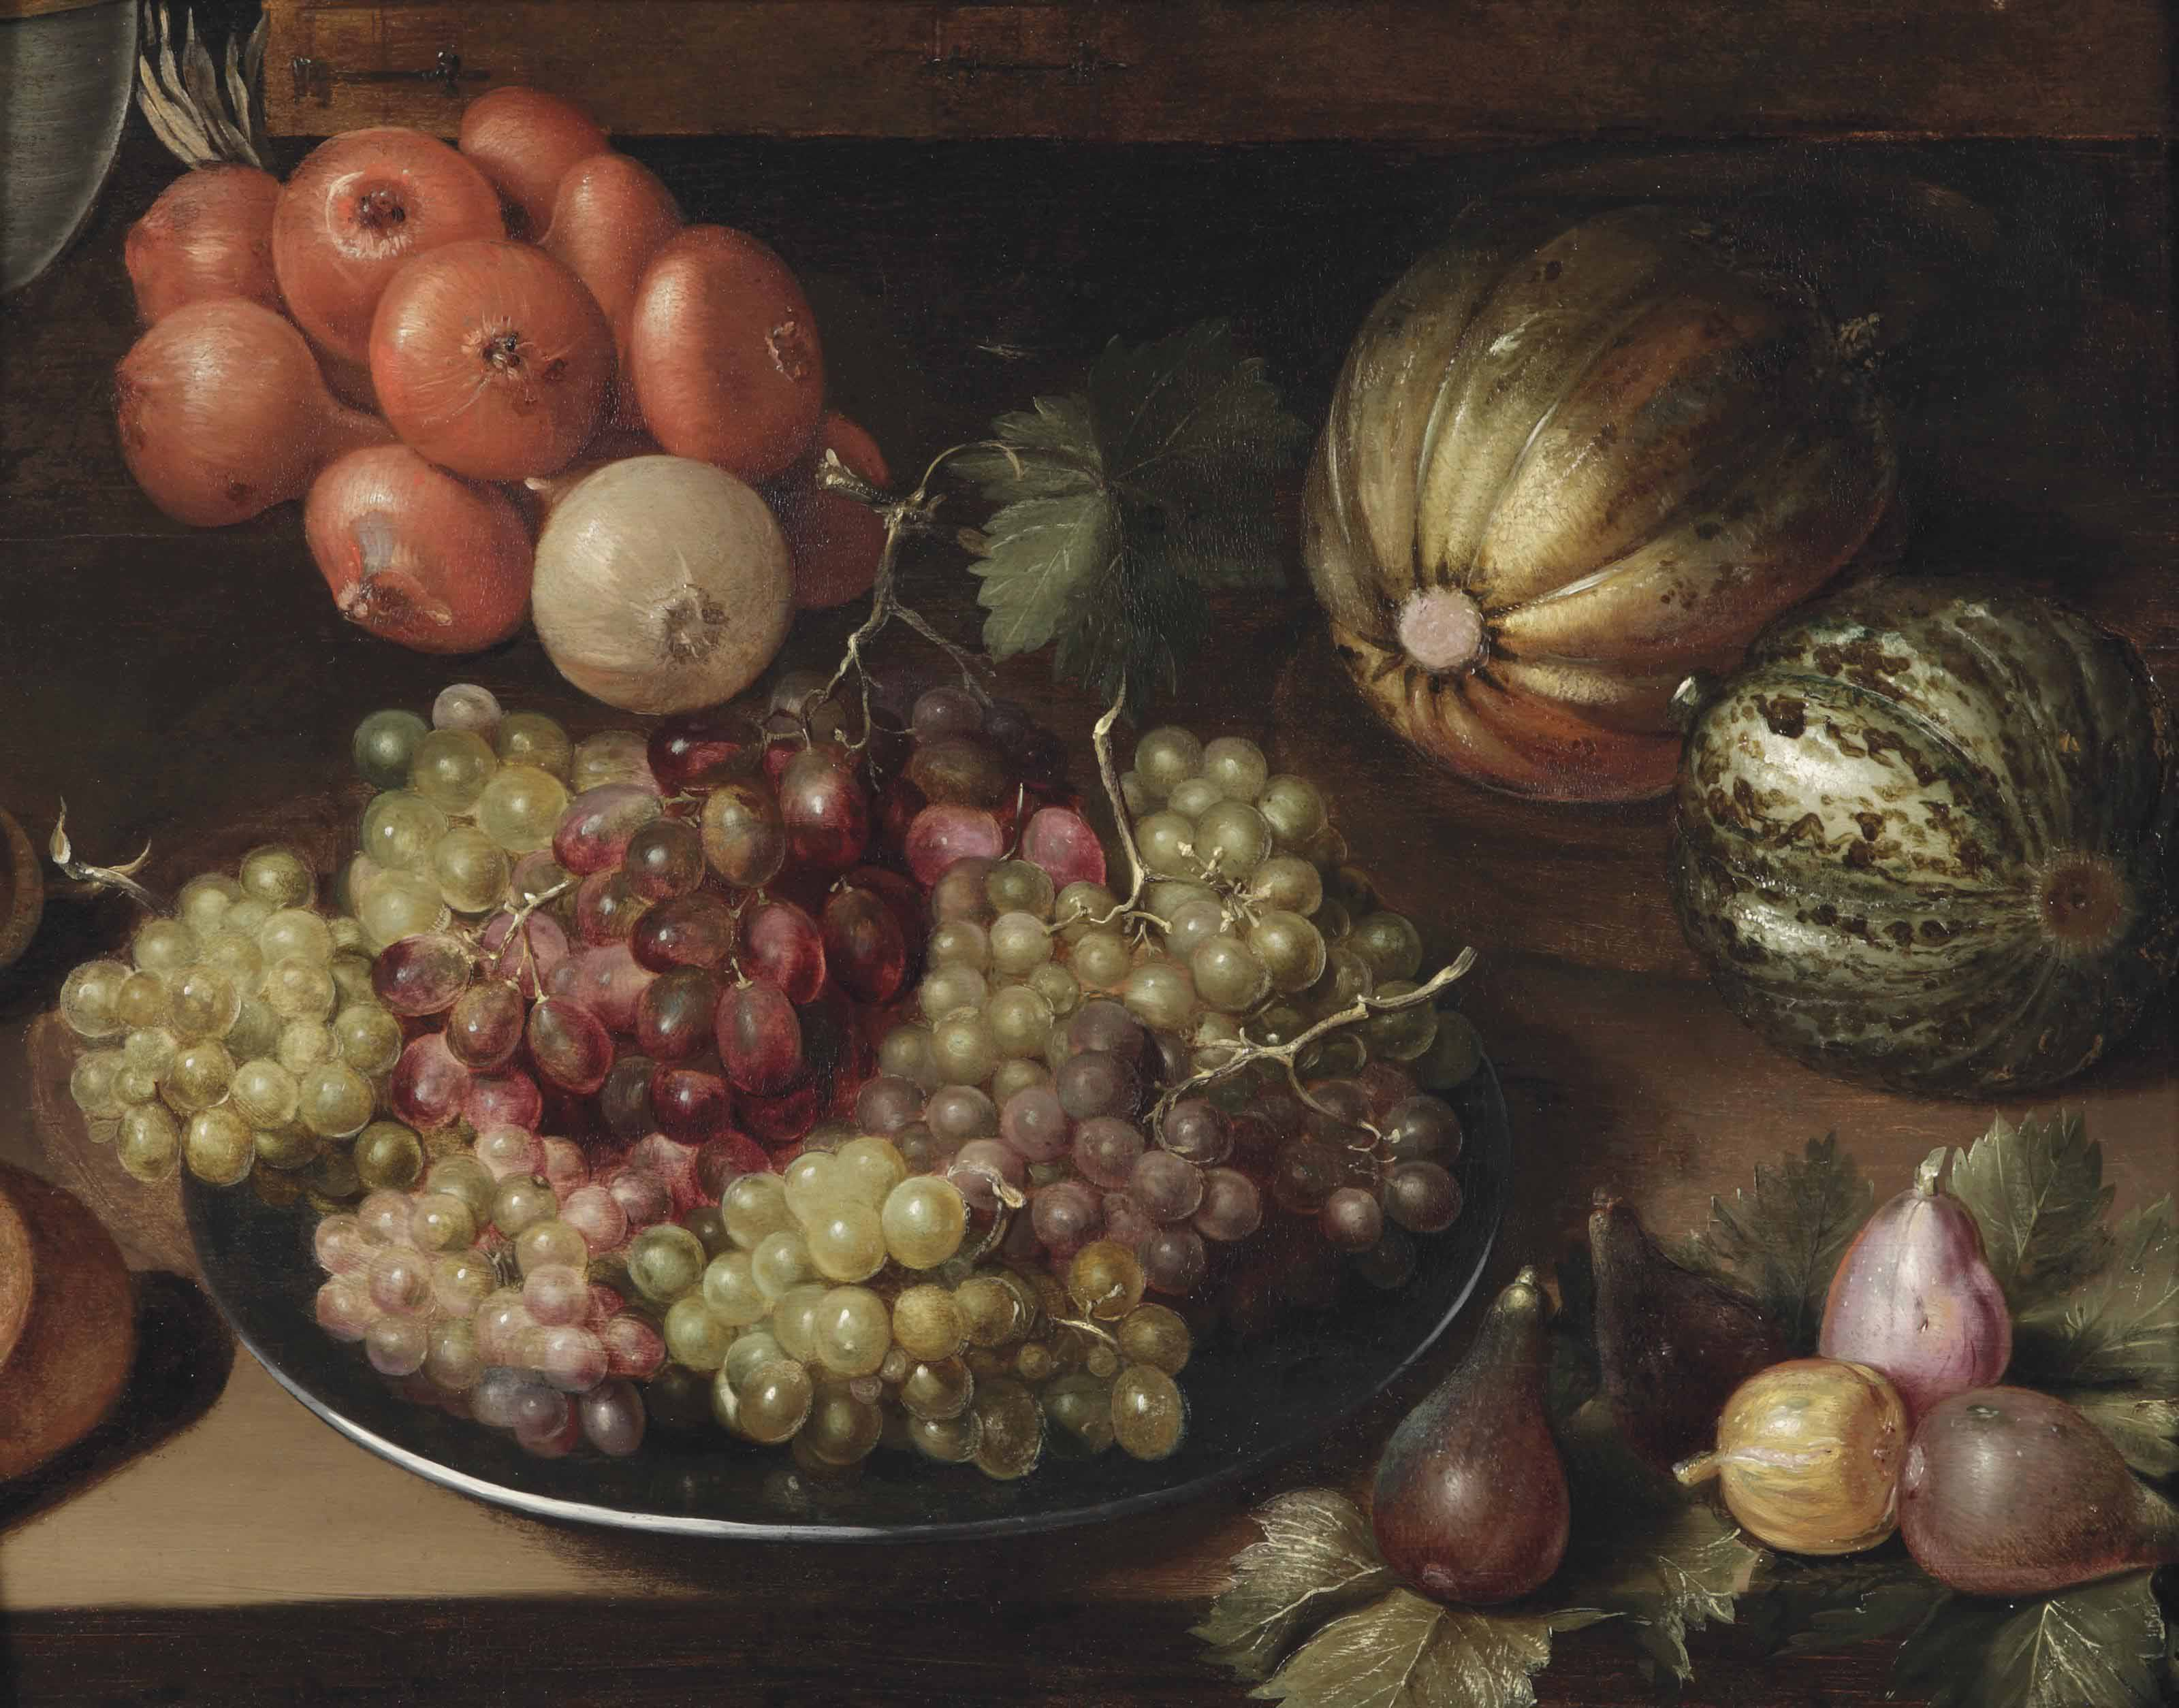 White and red grapes on a pewter plate, a string of onions, two melons and figs, all on a wooden table